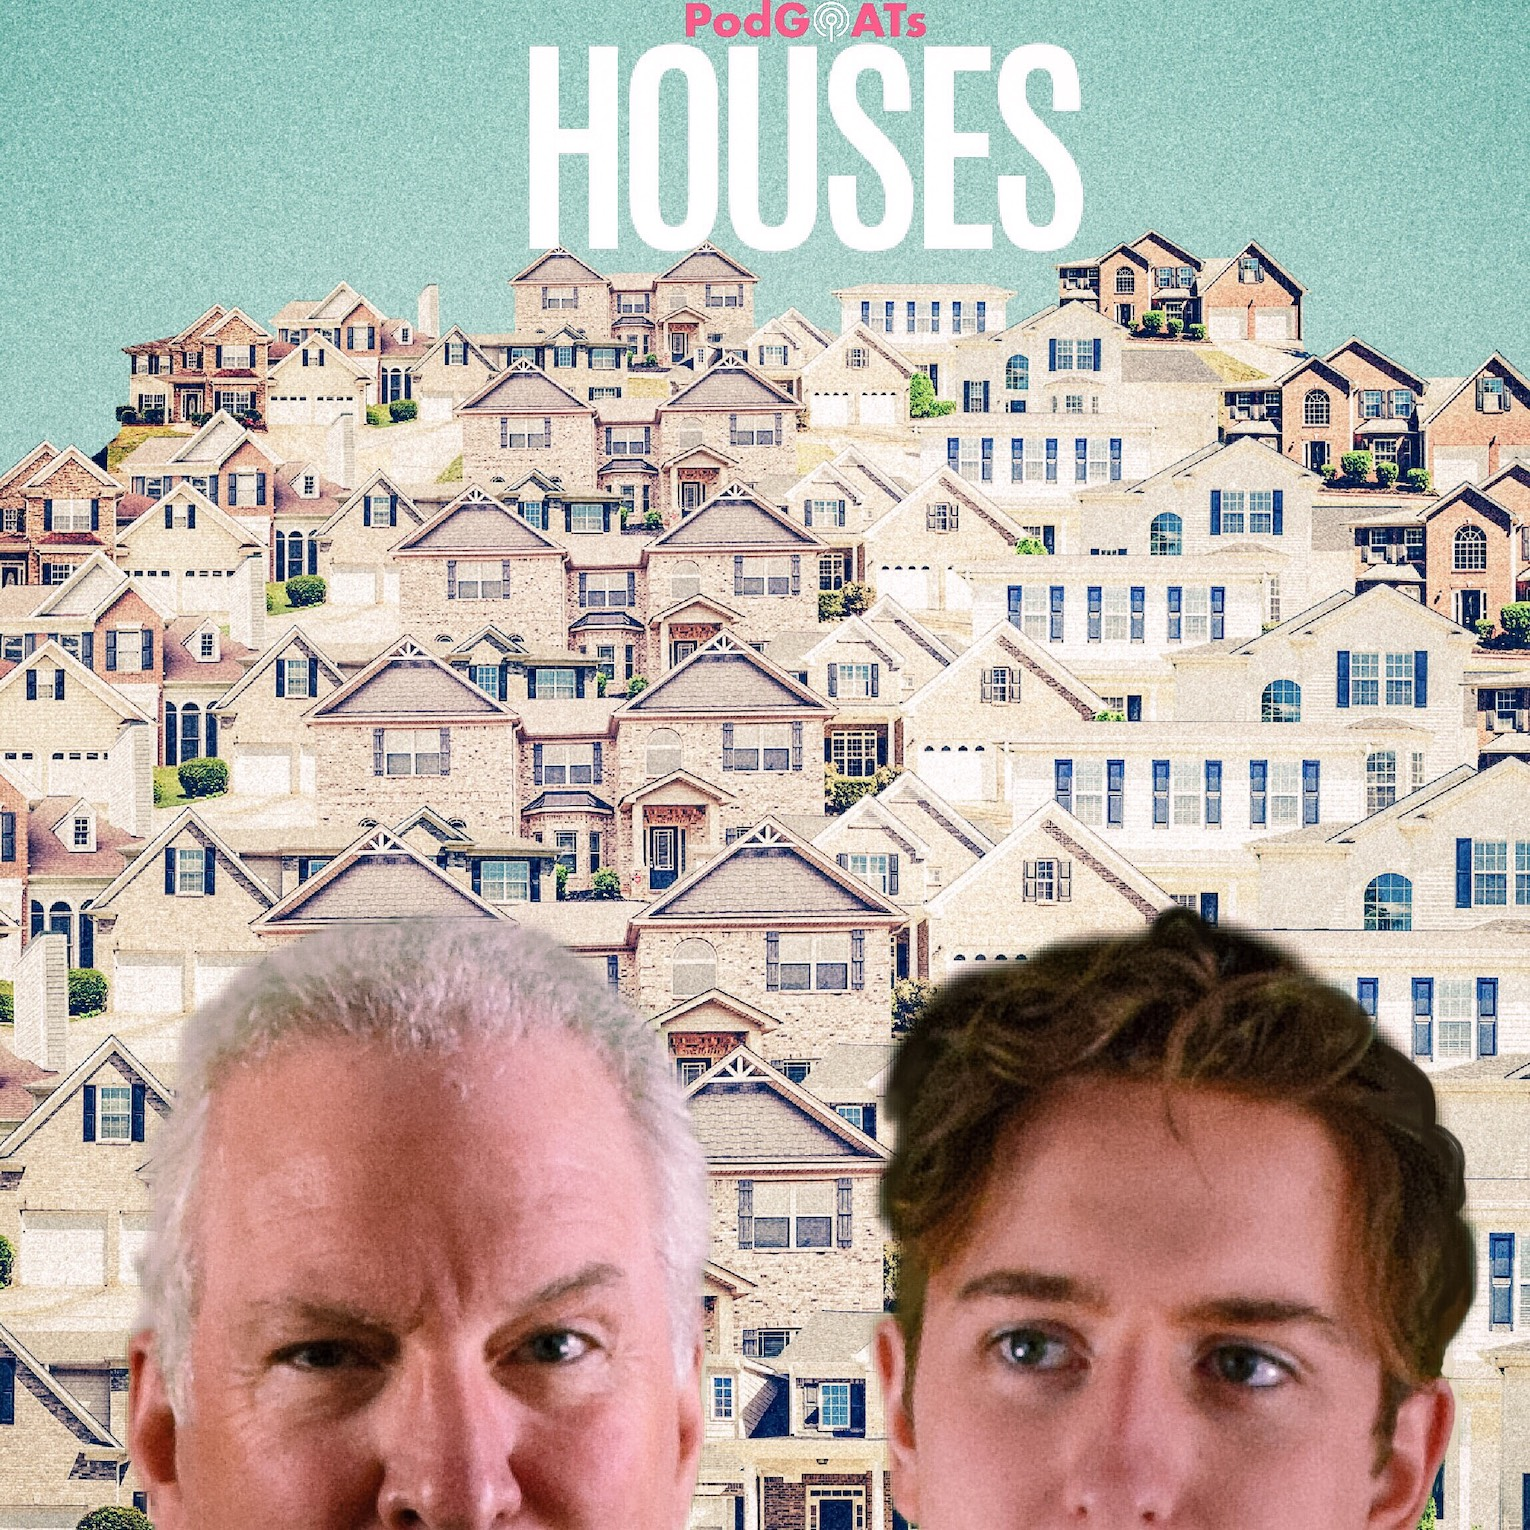 Houses: The Biggest, the Smallest, and the Strangest